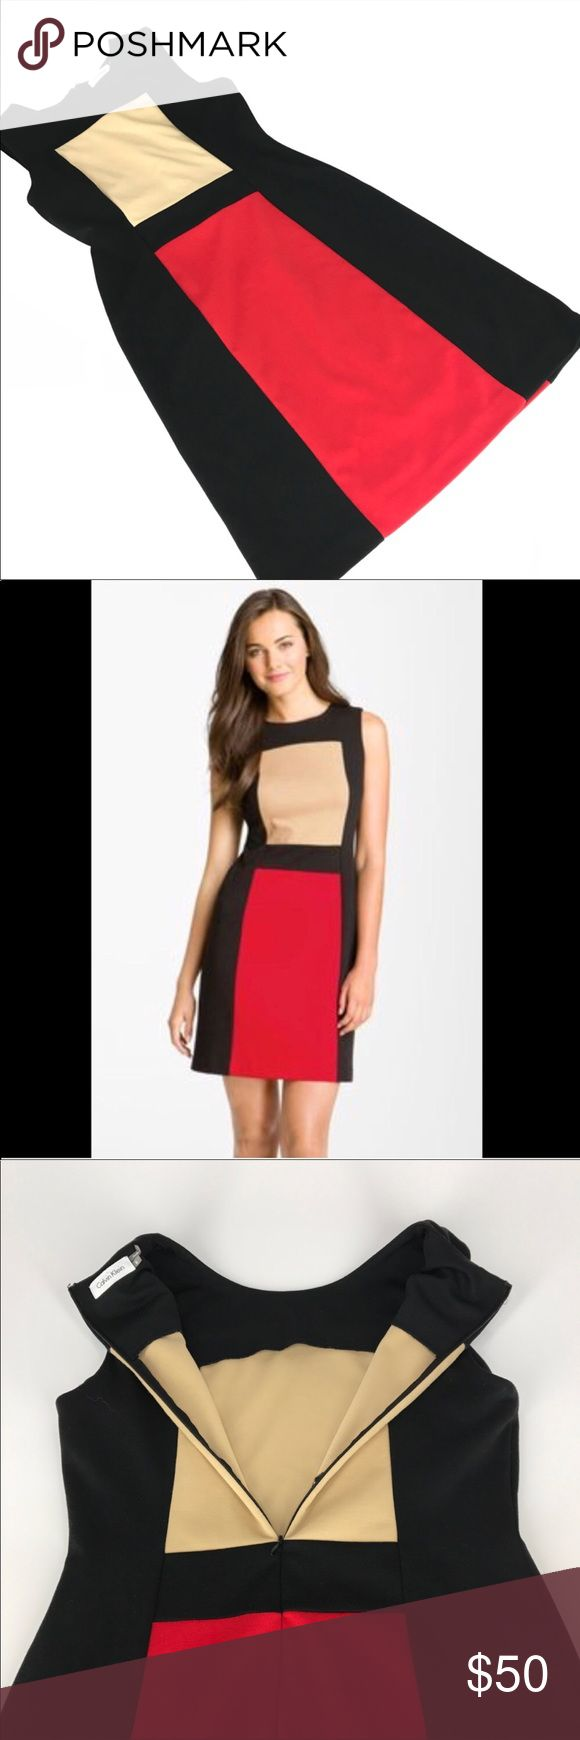 """Calvin Klein Color Block Dress Red, Black and Tan Beautiful dress by Calvin Klein size 6. This is an amazing Dress! Perfect for work or a night out! Comfortable fabric, darts at bust and a very flattering shape! No pilling. Excellent used condition.  Measurements: Length: 36"""" Pit to pit: 15.5"""" Waist: 15""""  Tiny spot on the tan square that buyer should be able to wash right out. Appeared during storage. Priced adjusted accordingly. Calvin Klein Dresses"""